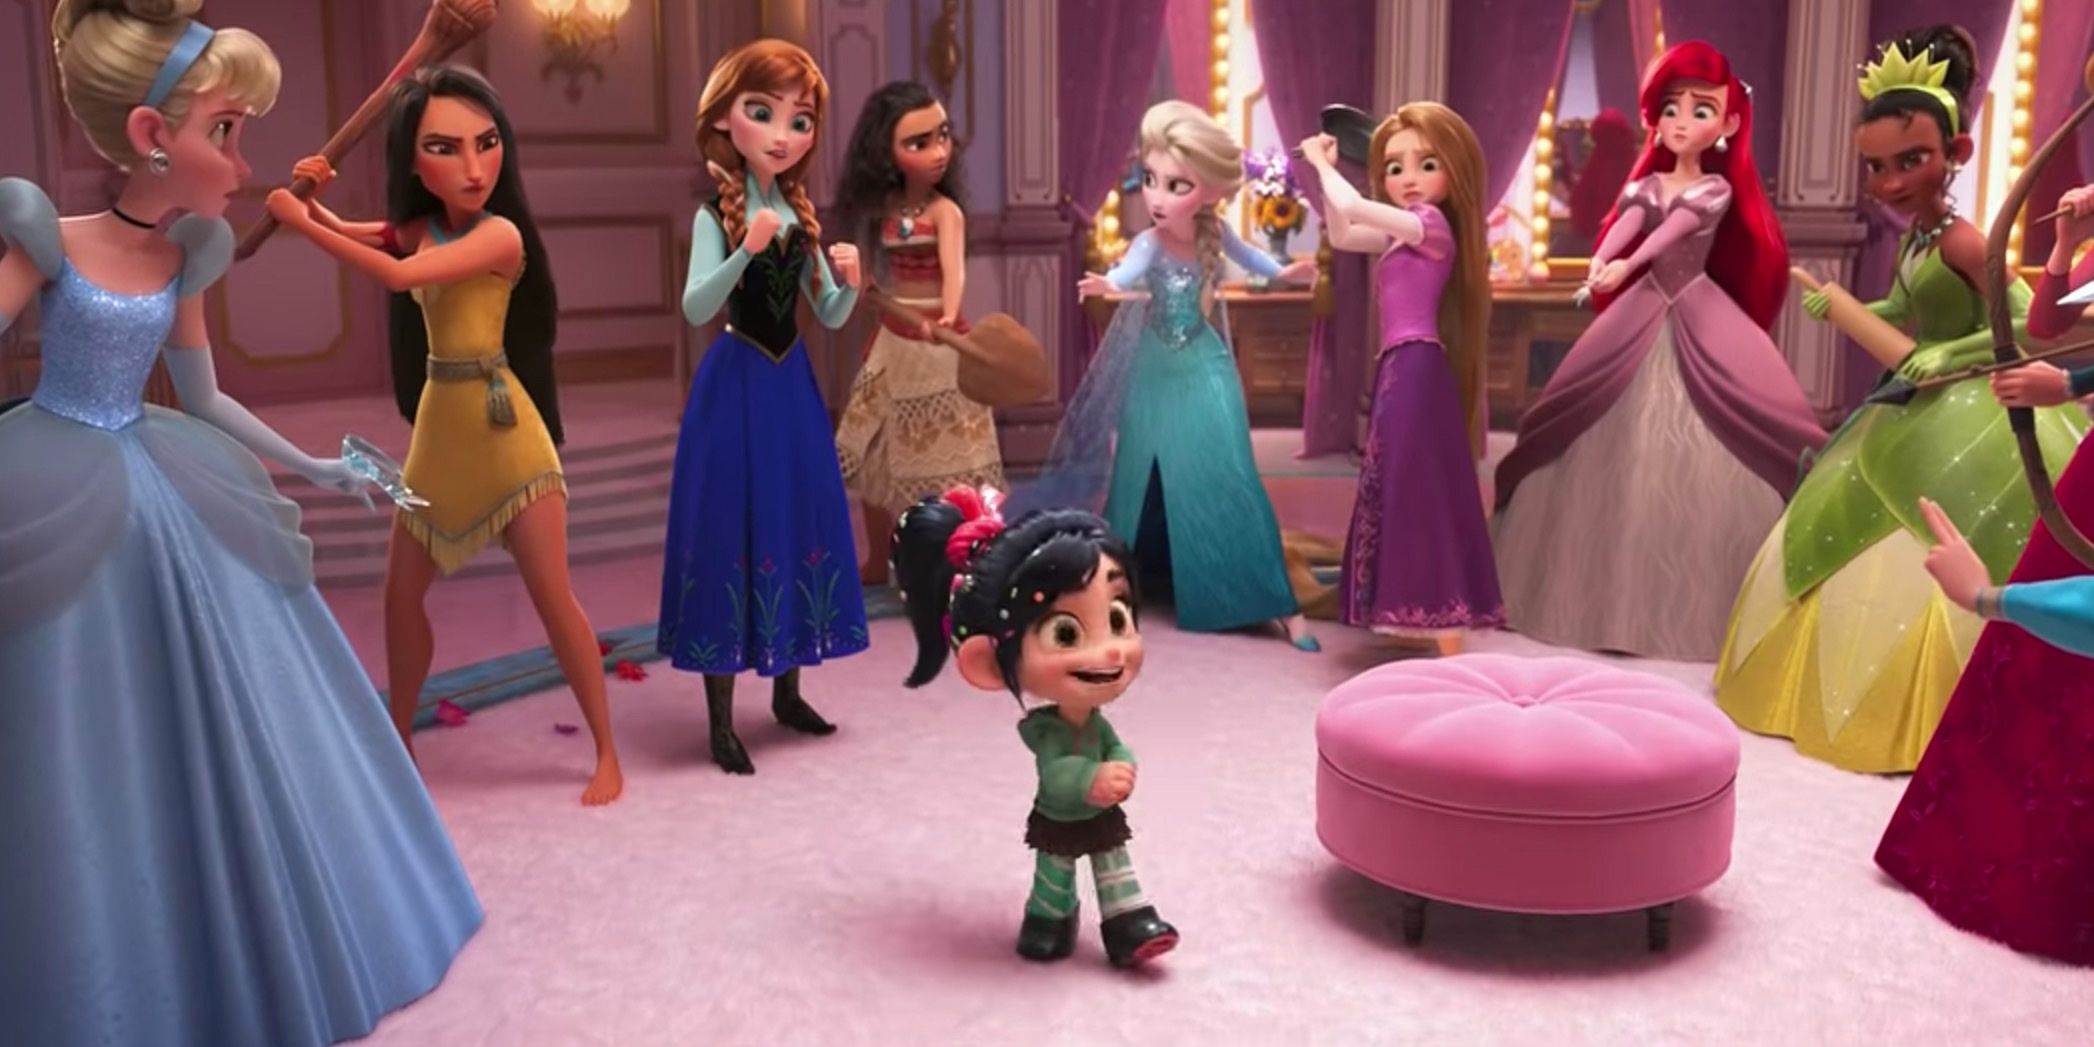 Ralph Breaks The Internet Brings The Disney Princesses Into The 21st Century